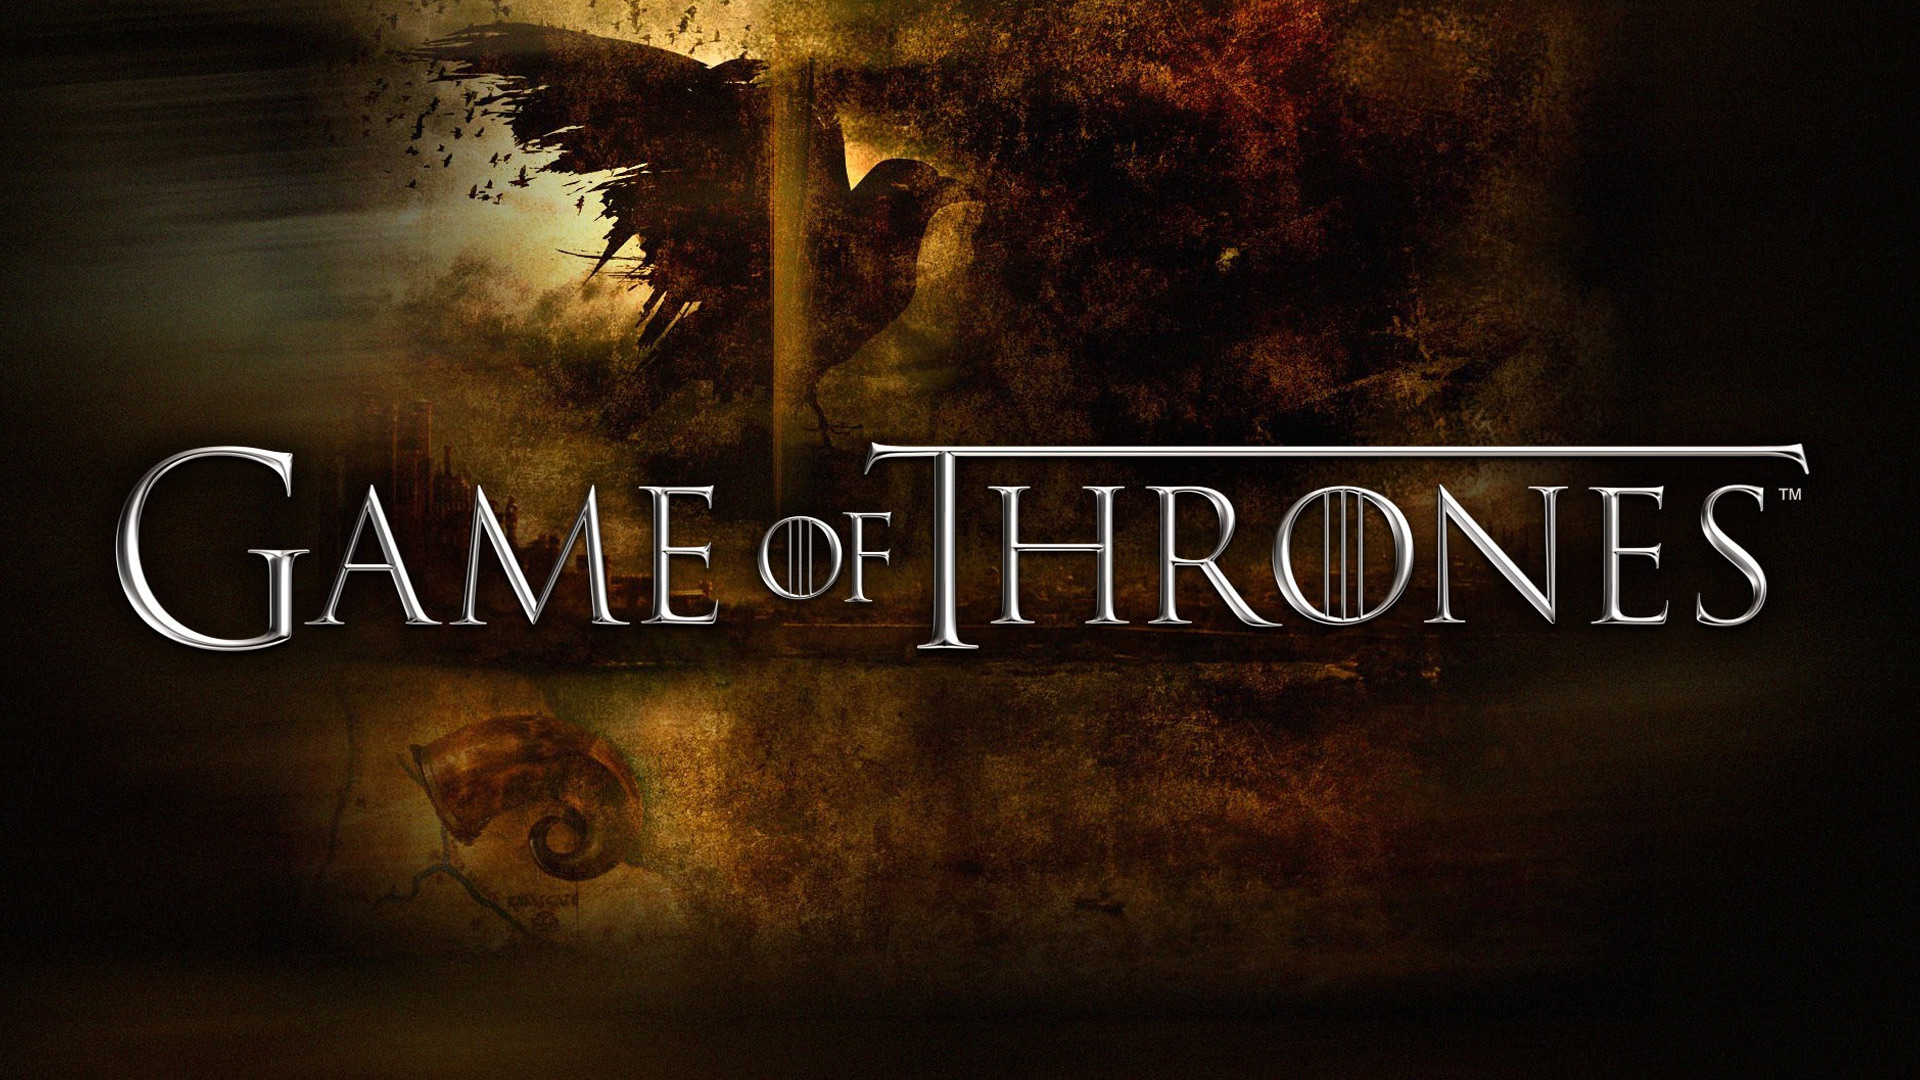 Game of thrones season 6 wallpaper full hd wallpapers for 1920x1080